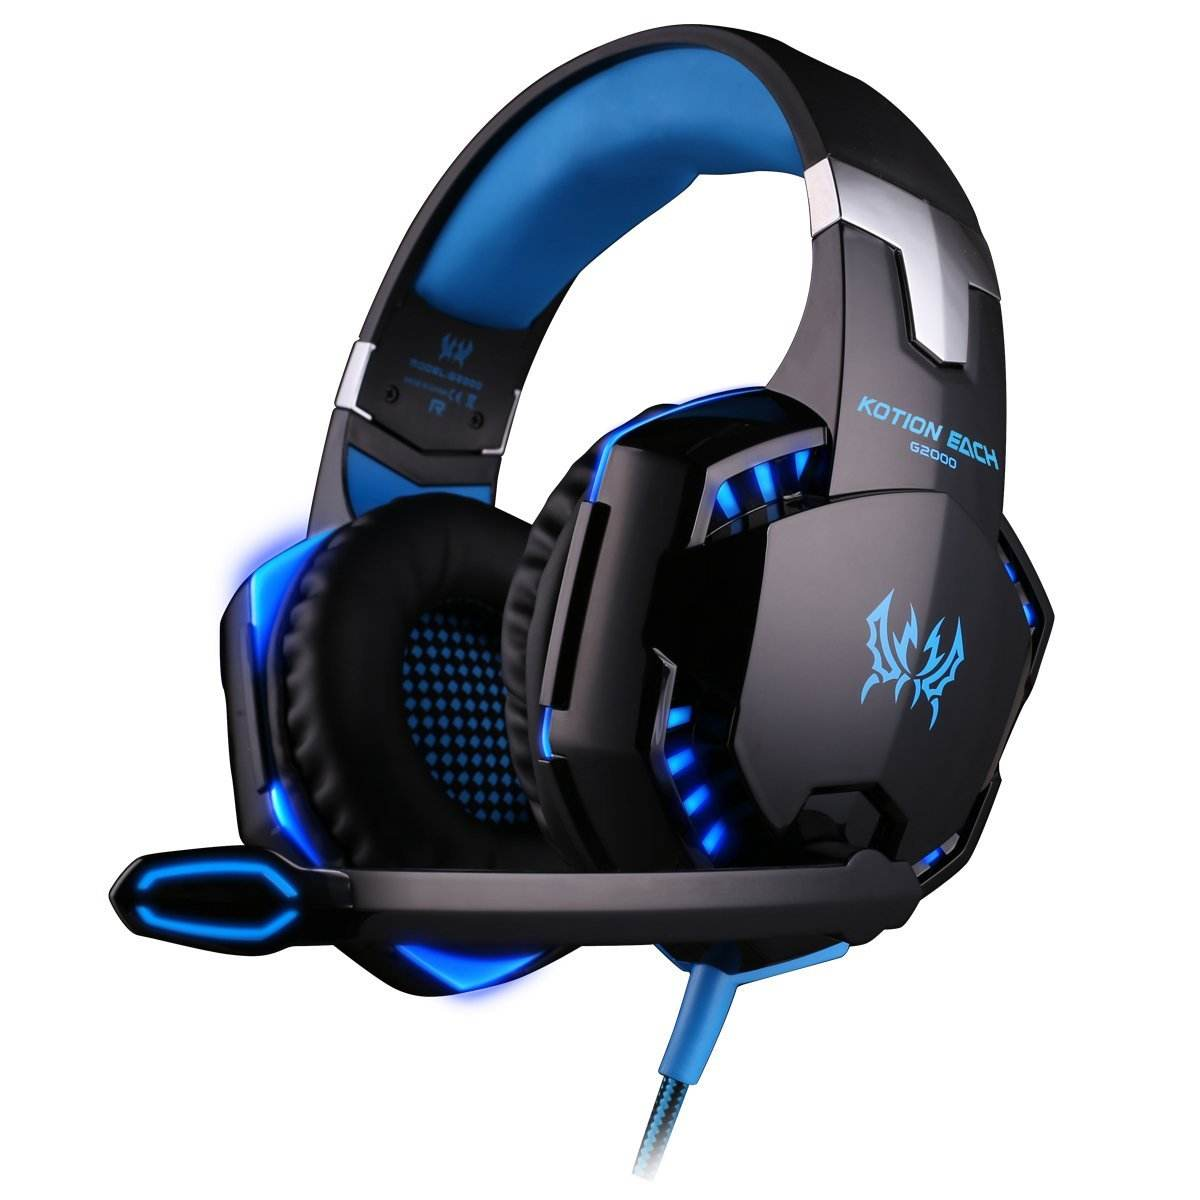 Hot Selling G2000 Wired Gaming Headphones Headset with Mic Lights for PS4 XBOX ONE PC SWITCH